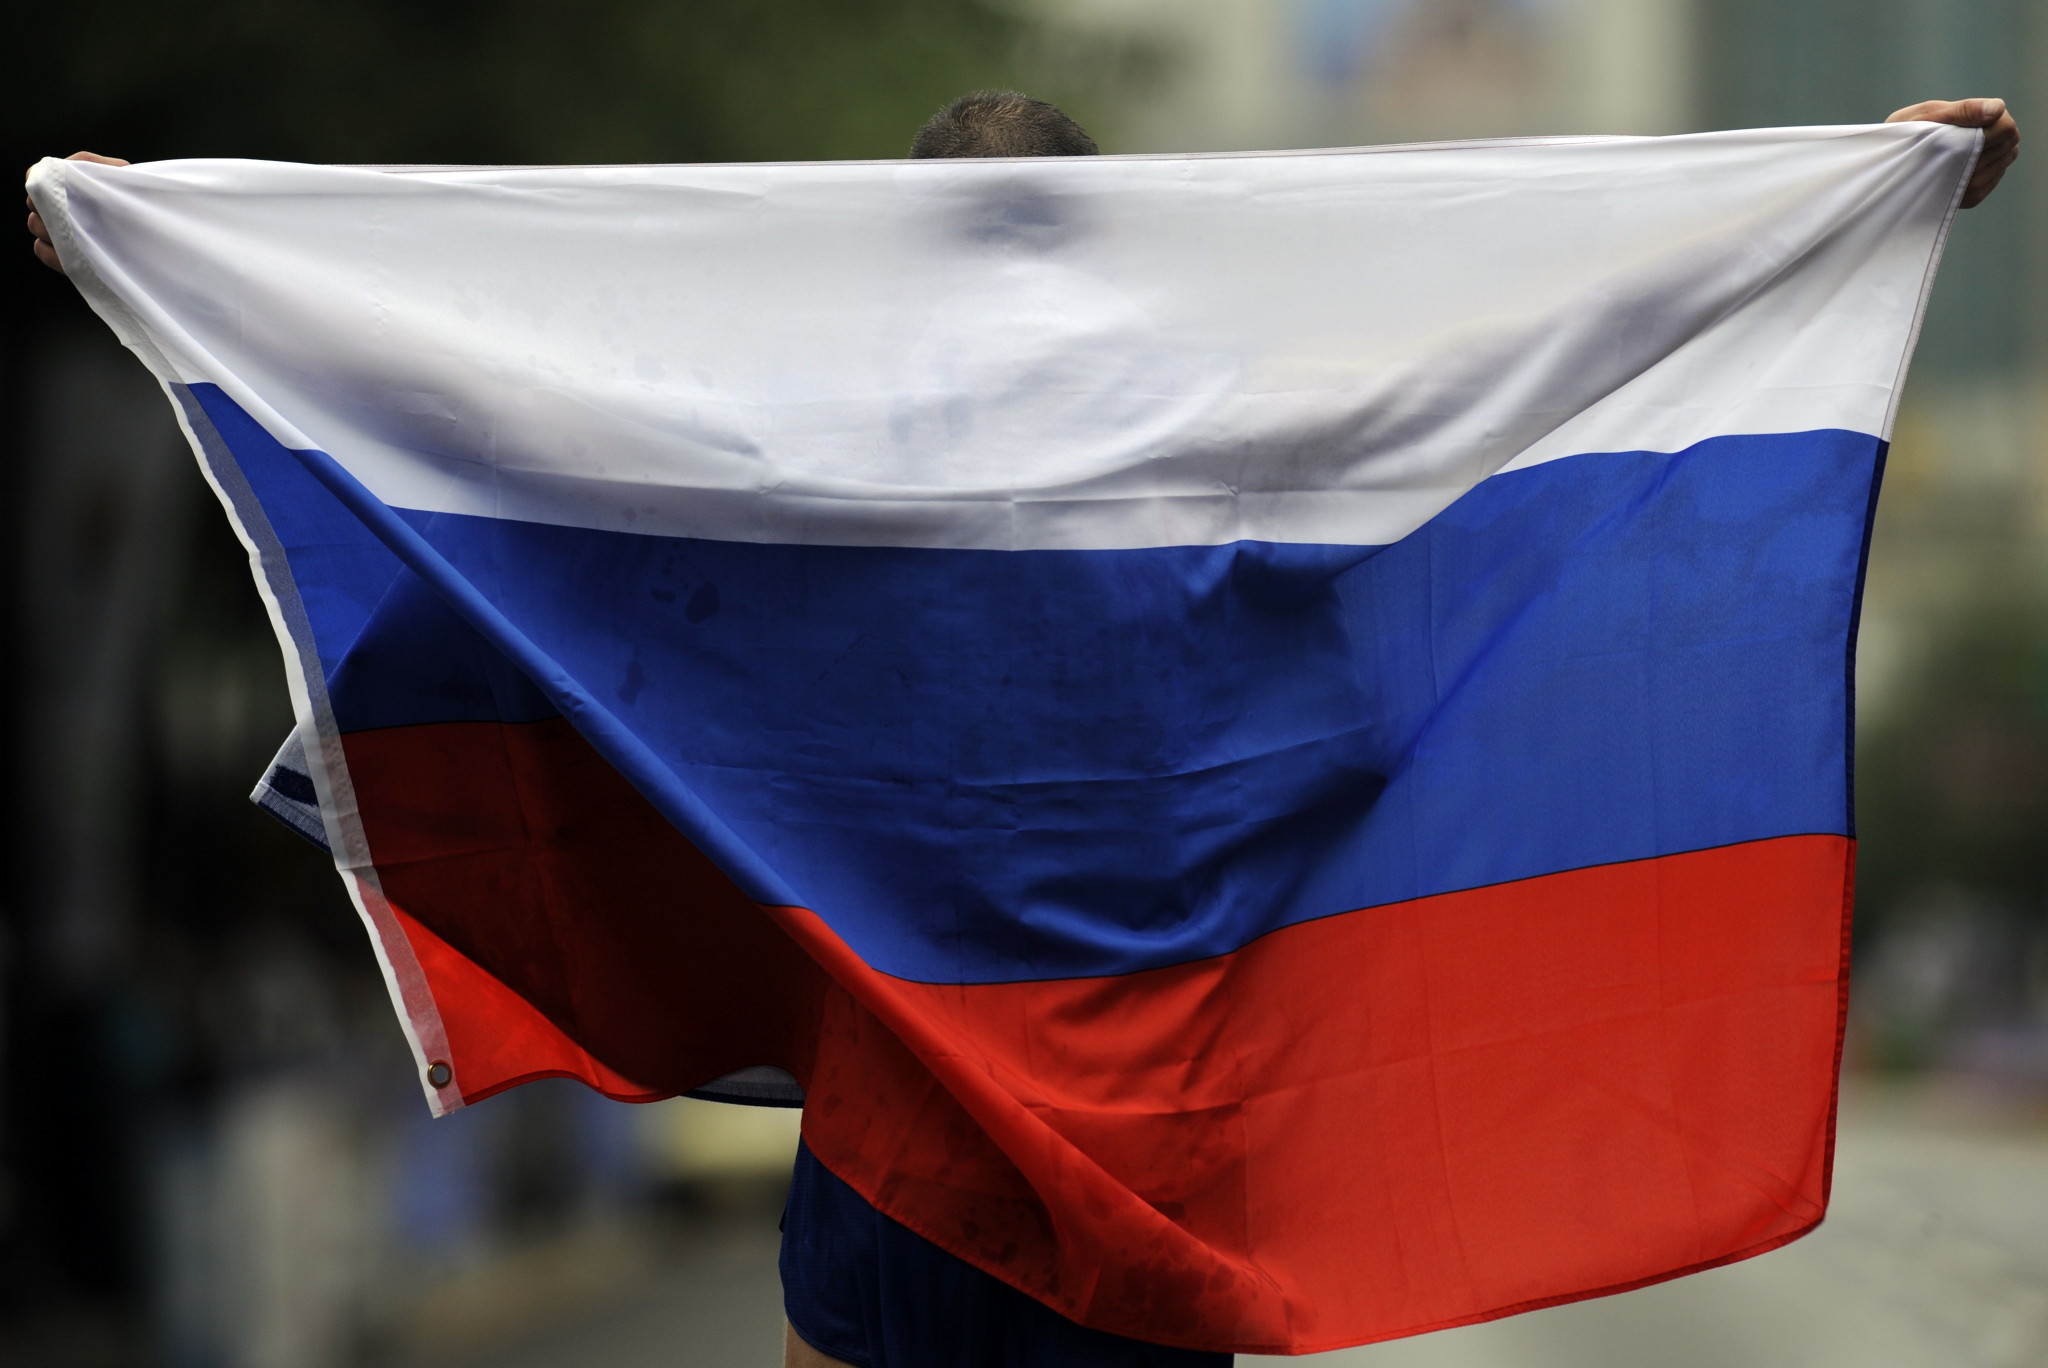 Russia's flag will be banned from all World Championships until December 2022 ©Getty Images